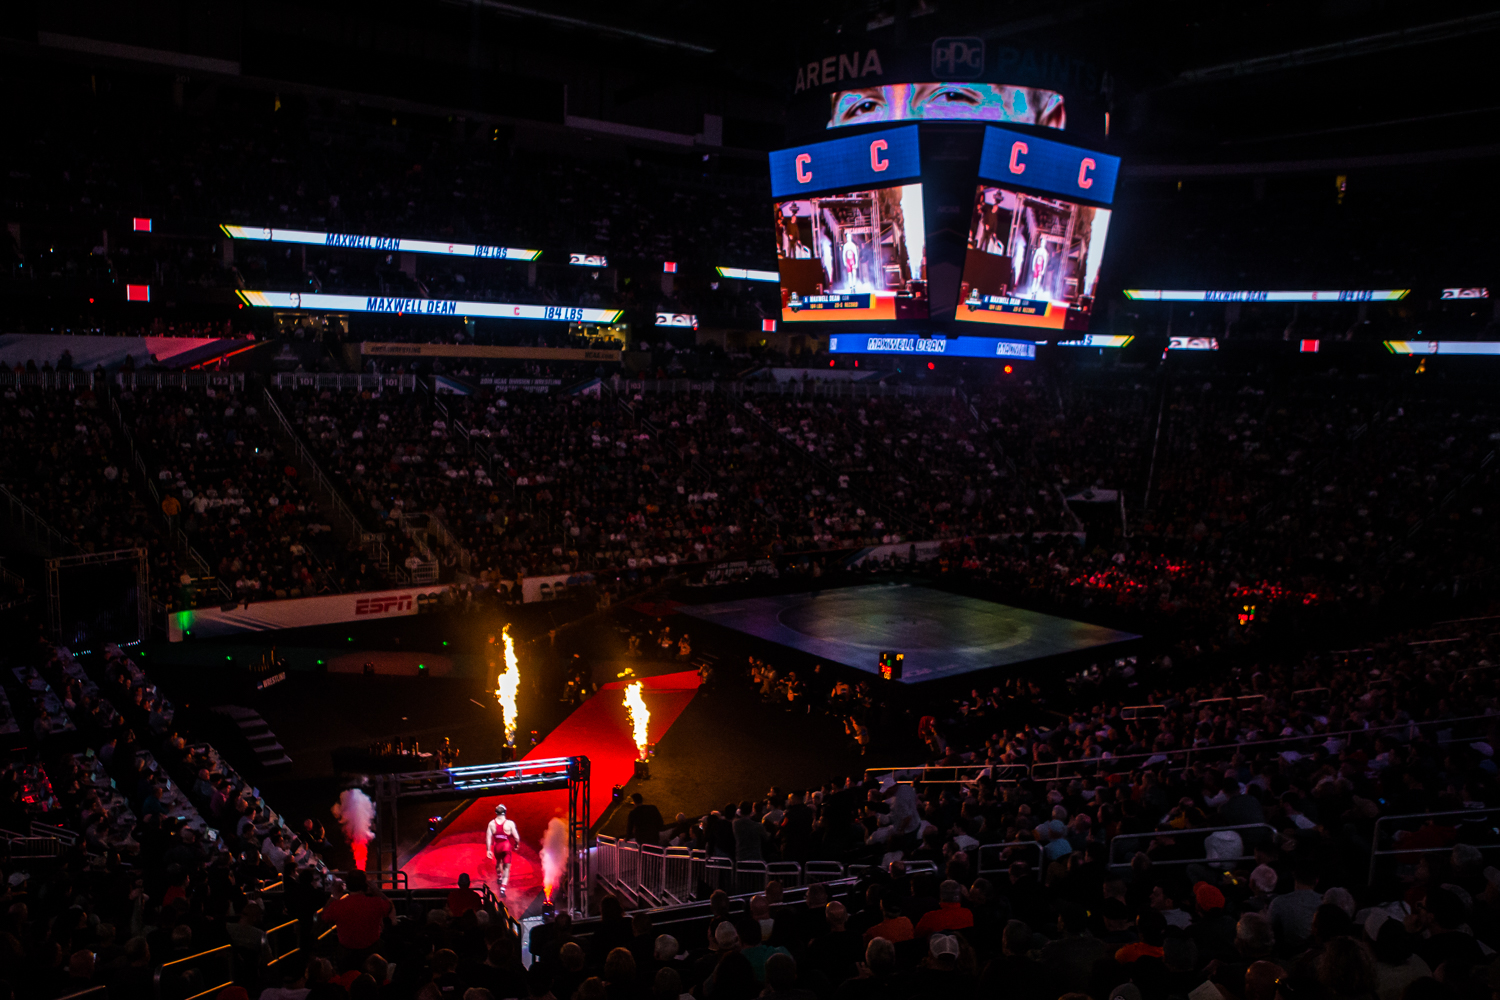 Cornell%27s+184-pound+Maxwell+Dean+walks+onto+the+mat+during+the+final+session+of+the+2019+NCAA+D1+Wrestling+Championships+at+PPG+Paints+Arena+in+Pittsburgh%2C+PA+on+Saturday%2C+March+23%2C+2019.